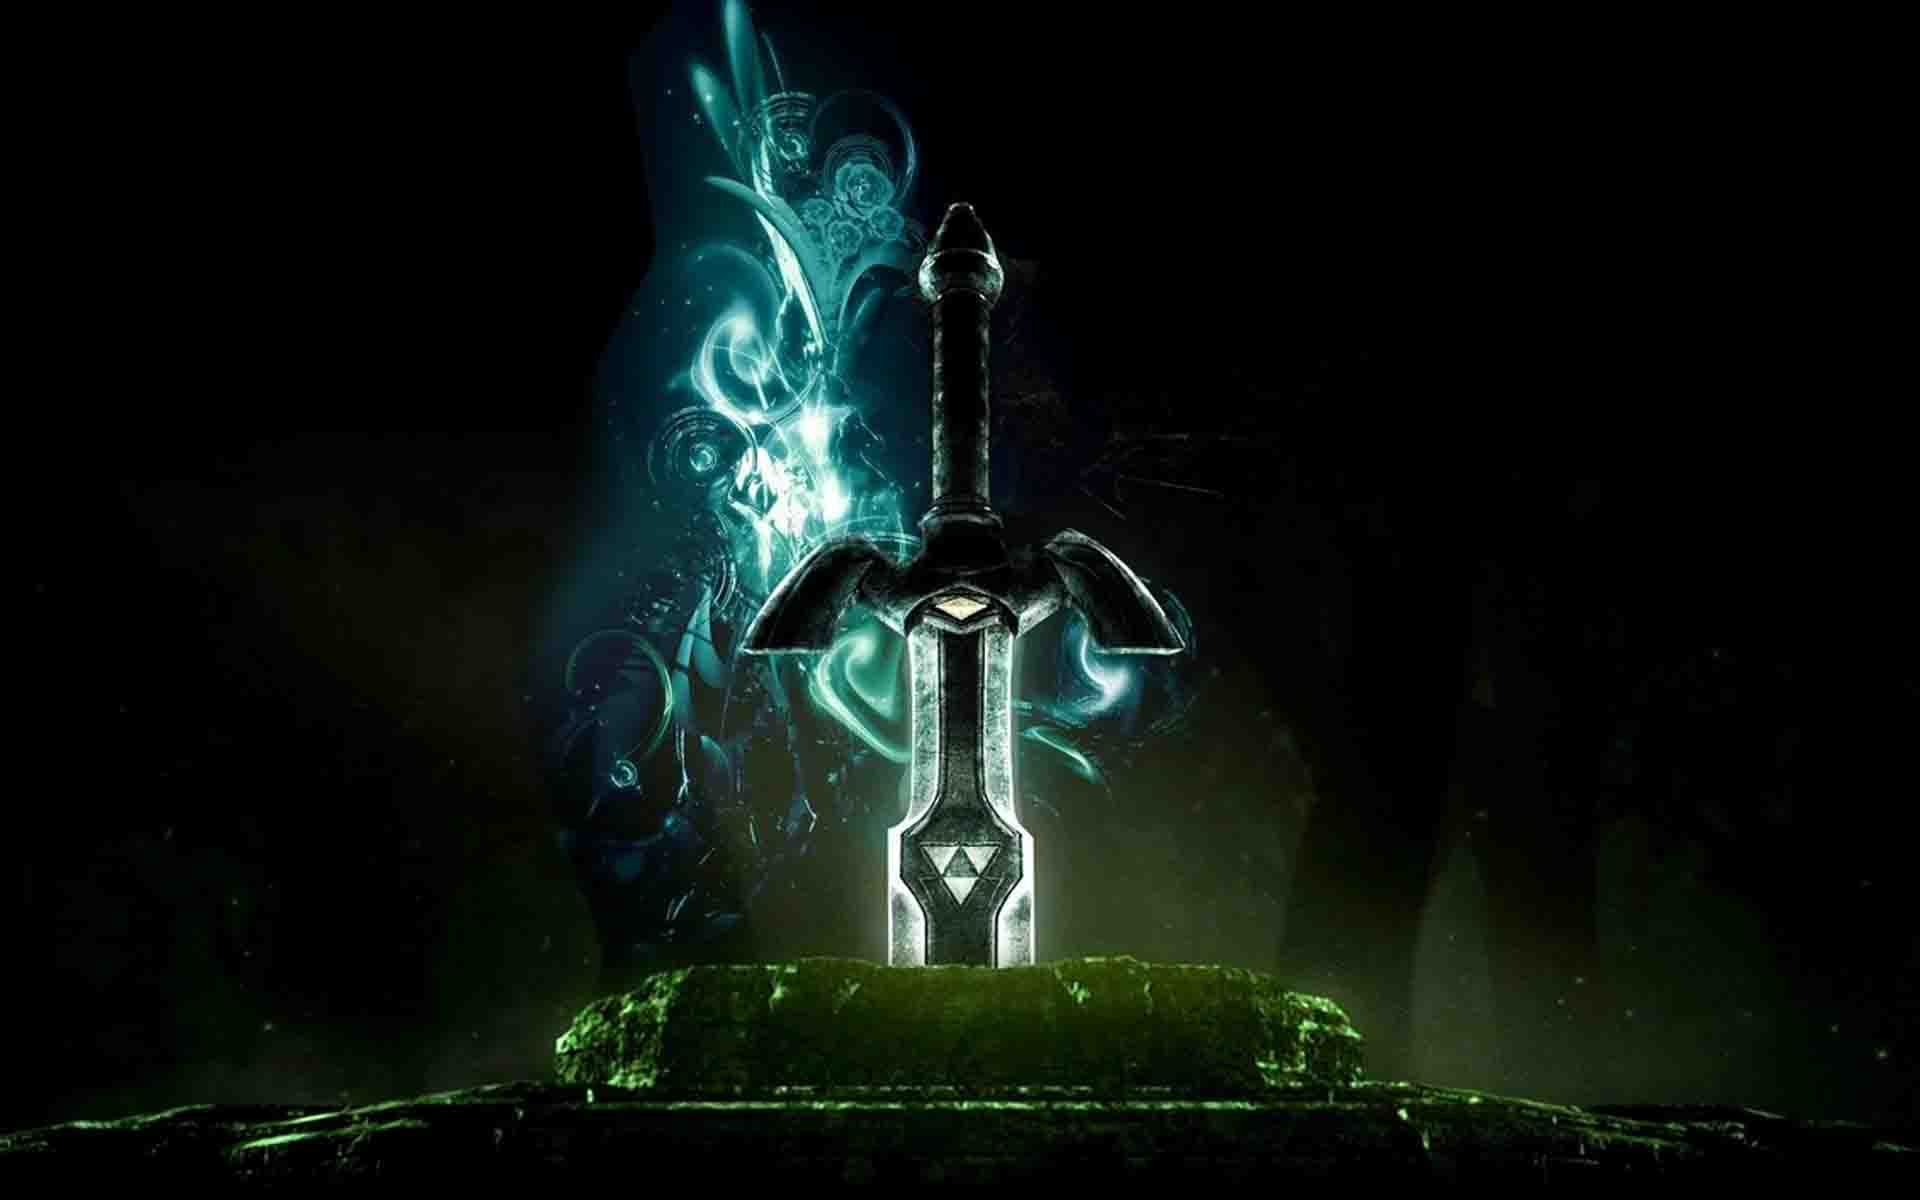 Animated Sword Hd Wallpaper With Images Zelda Master Sword